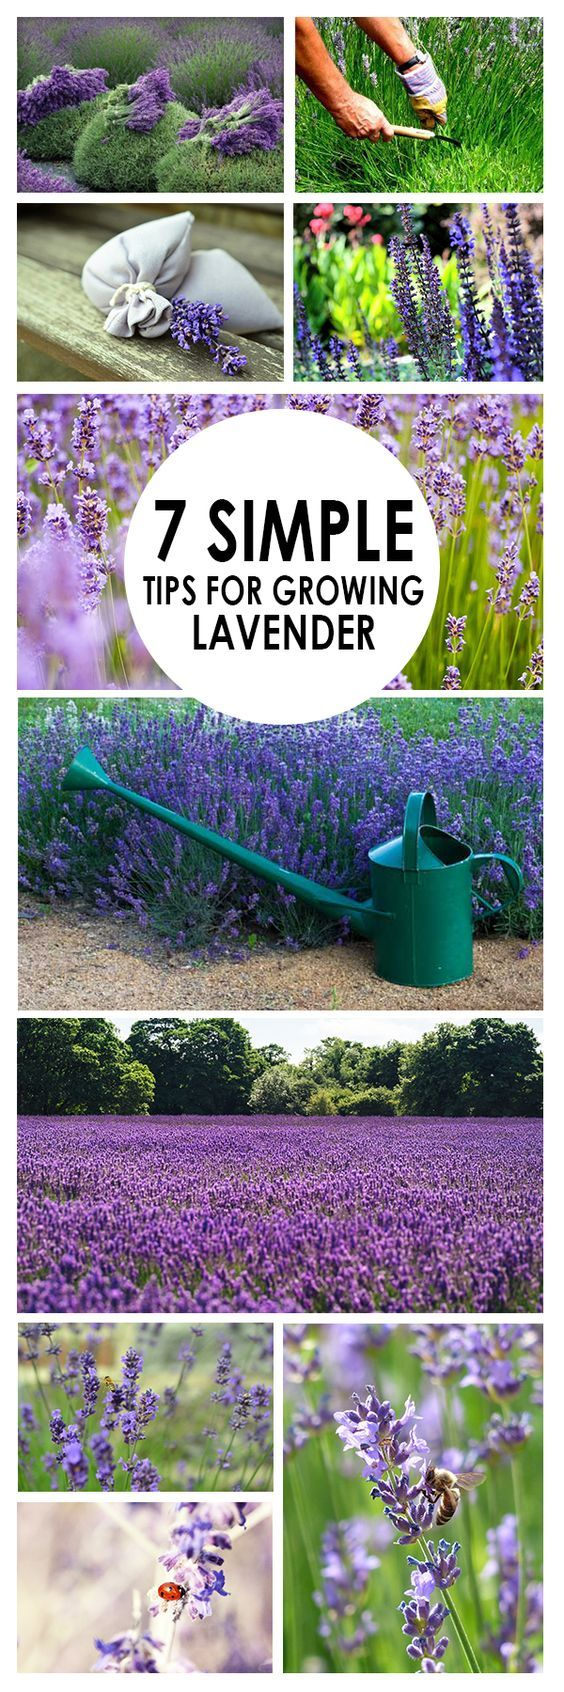 7. Harvesting Timing of the harvest depends on what you are using the lavender for. For fresh-market or or dried bundles harvest